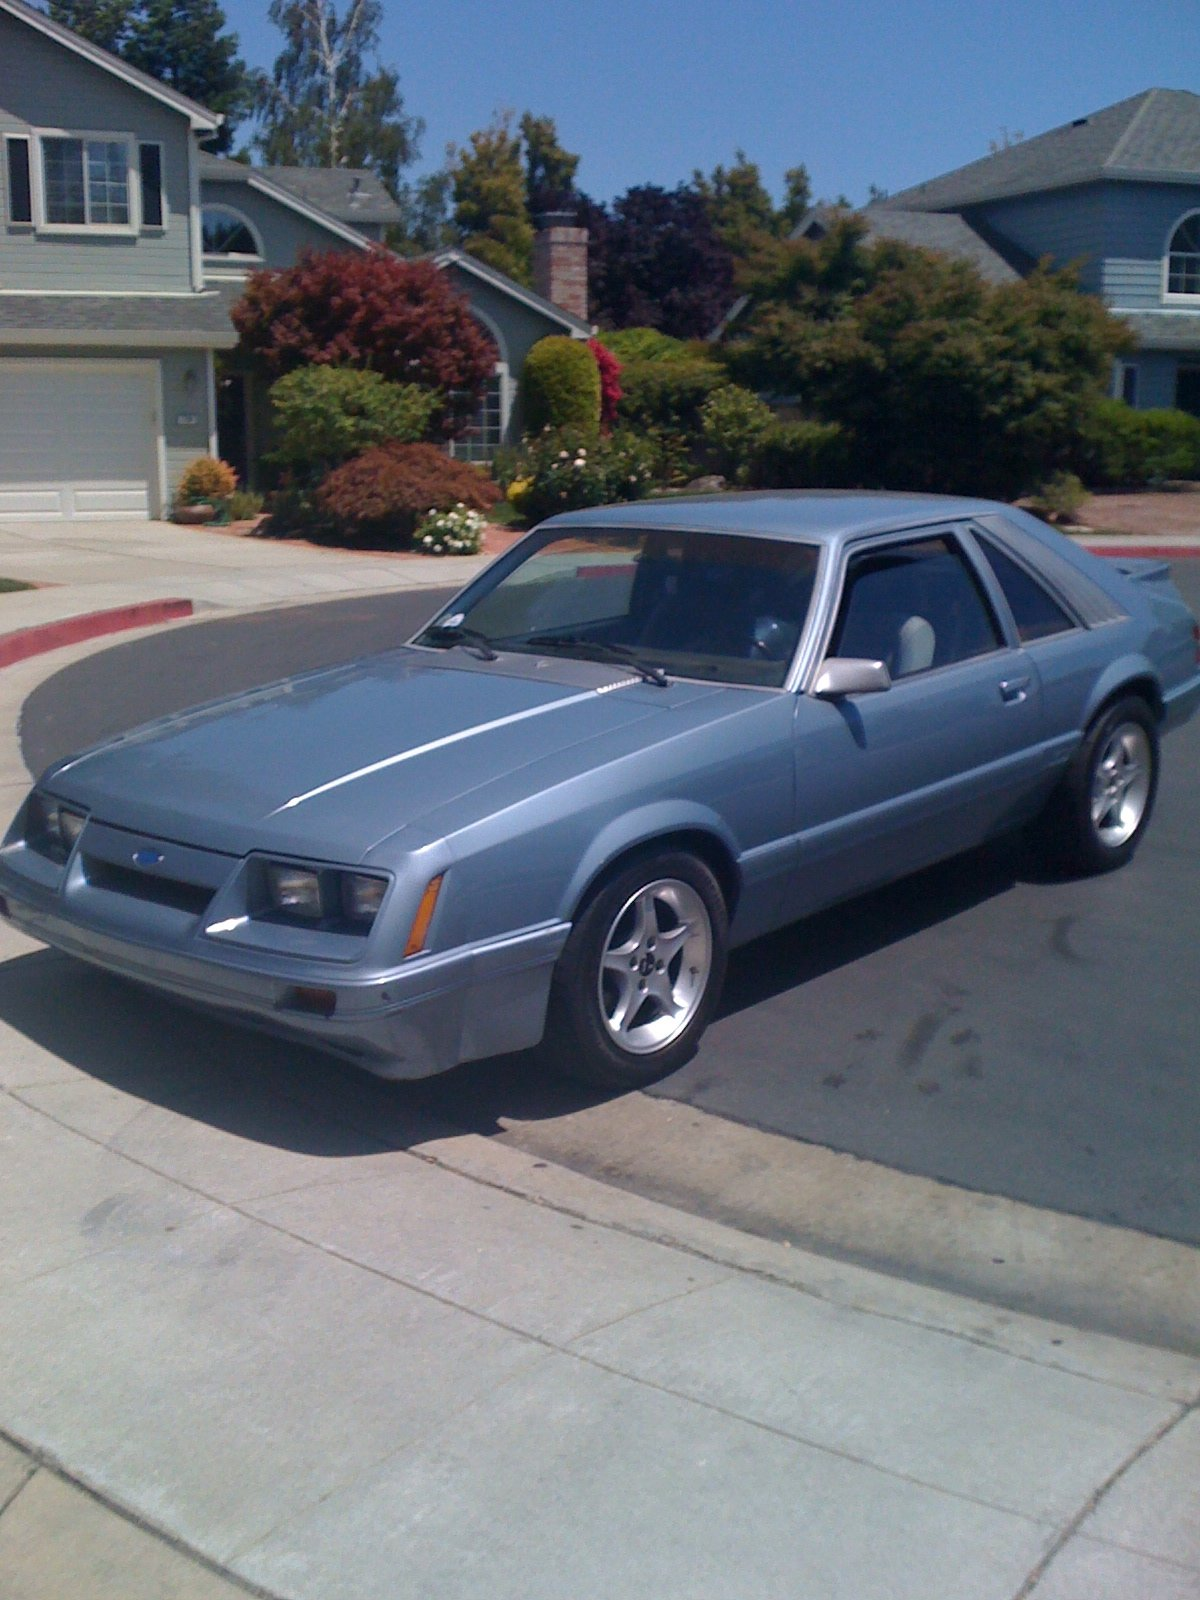 1986 Mustang GT for sale (Bay Area)-img_0259.jpg